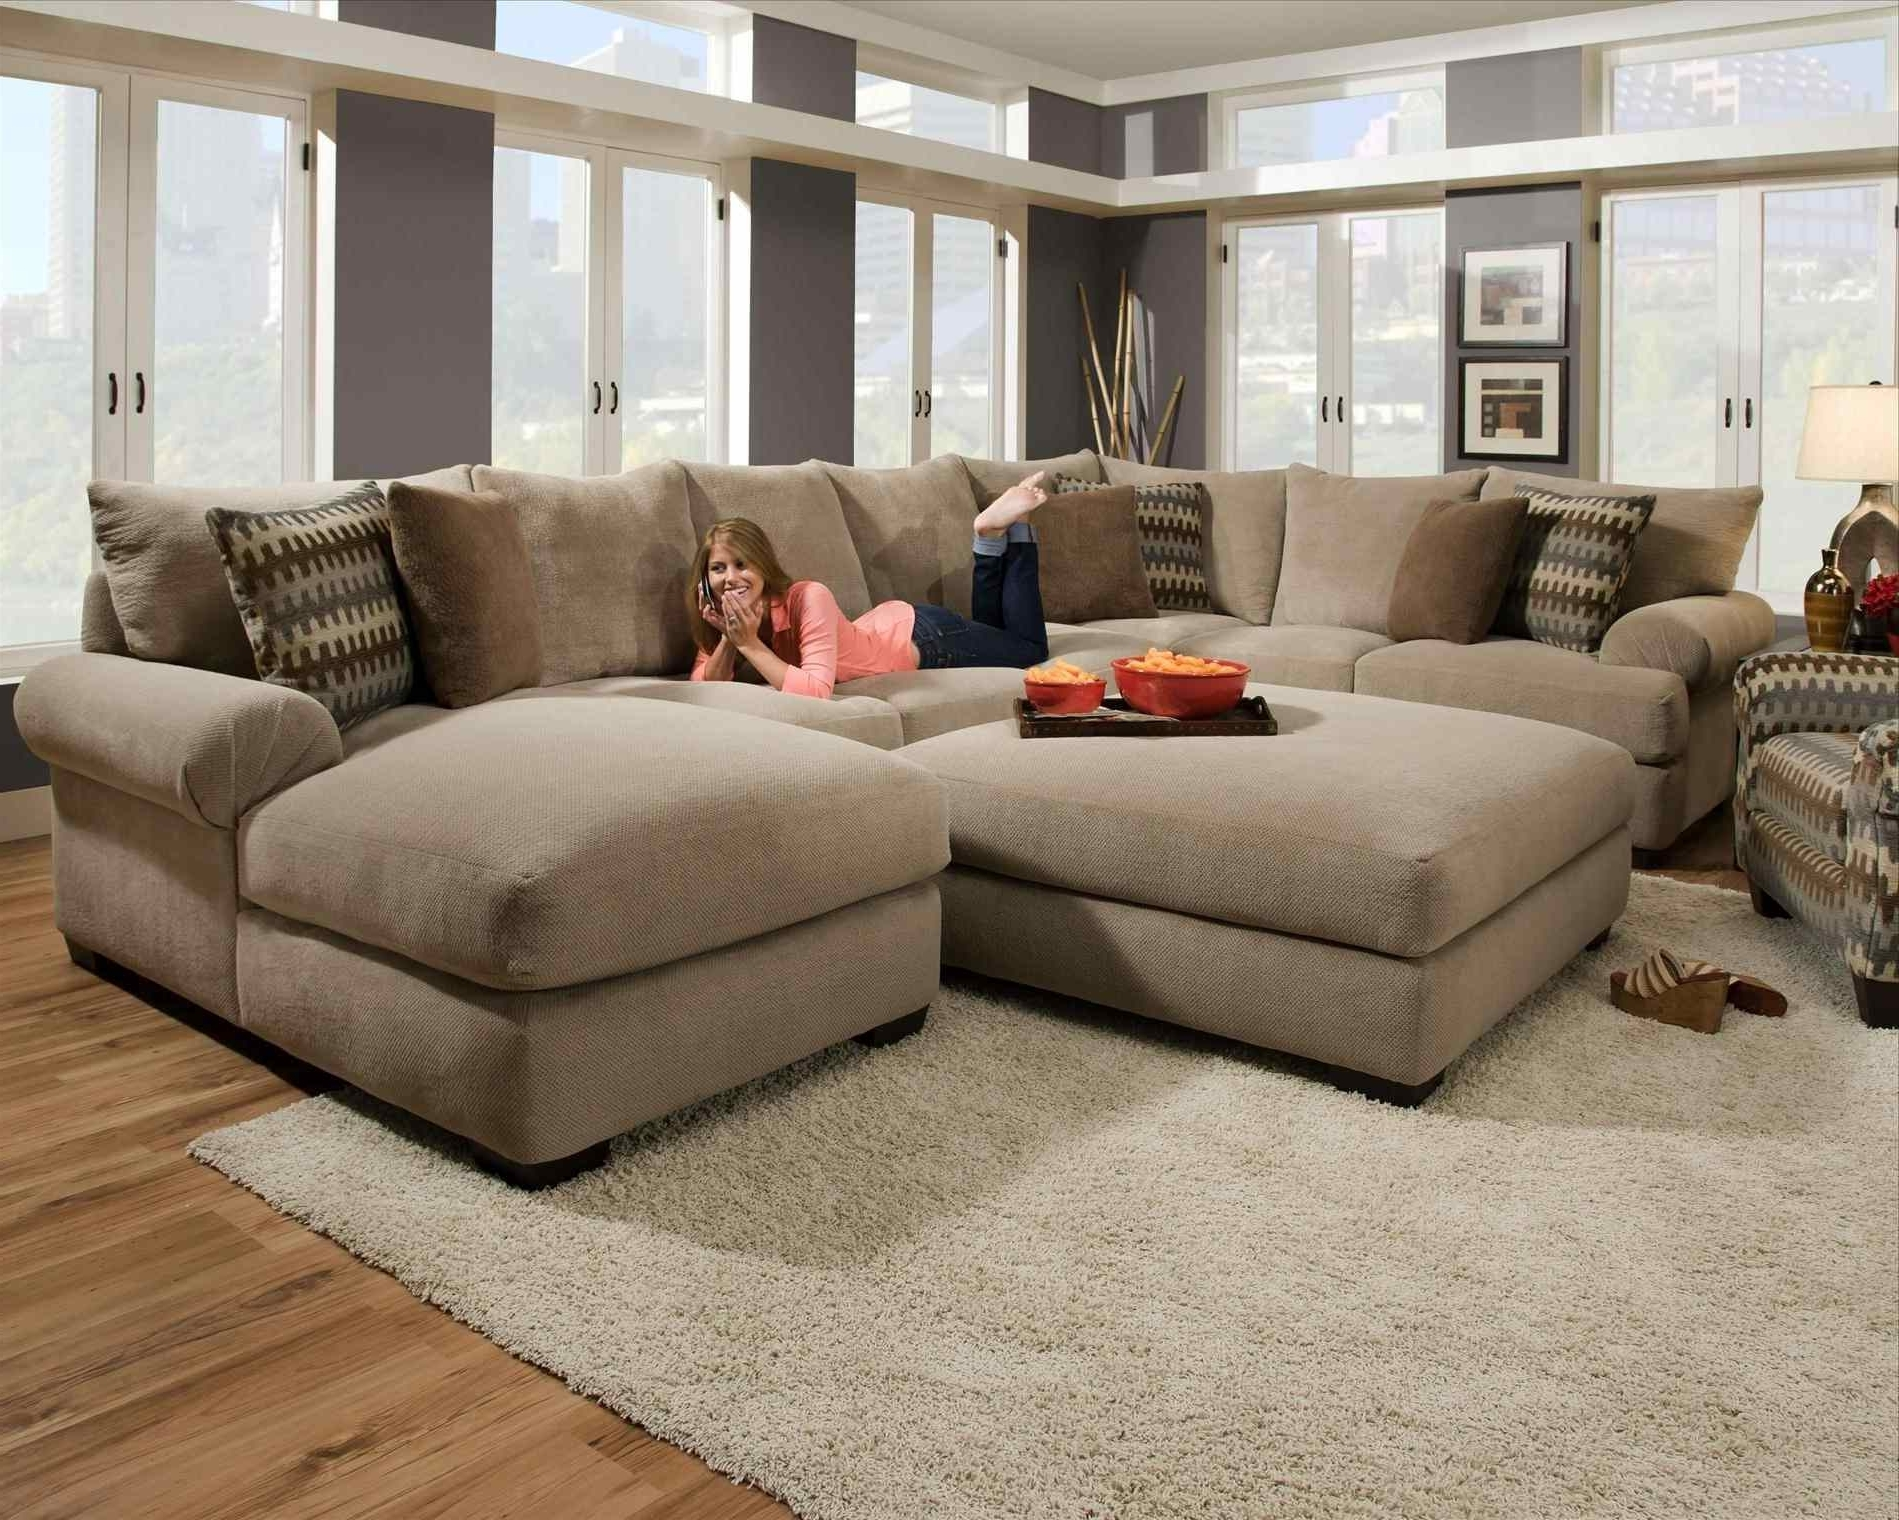 Recent Couch : Oversized Sectional Sofas Round Cuddle Es Big Comfy Sofa Pertaining To Cozy Sectional Sofas (View 19 of 20)